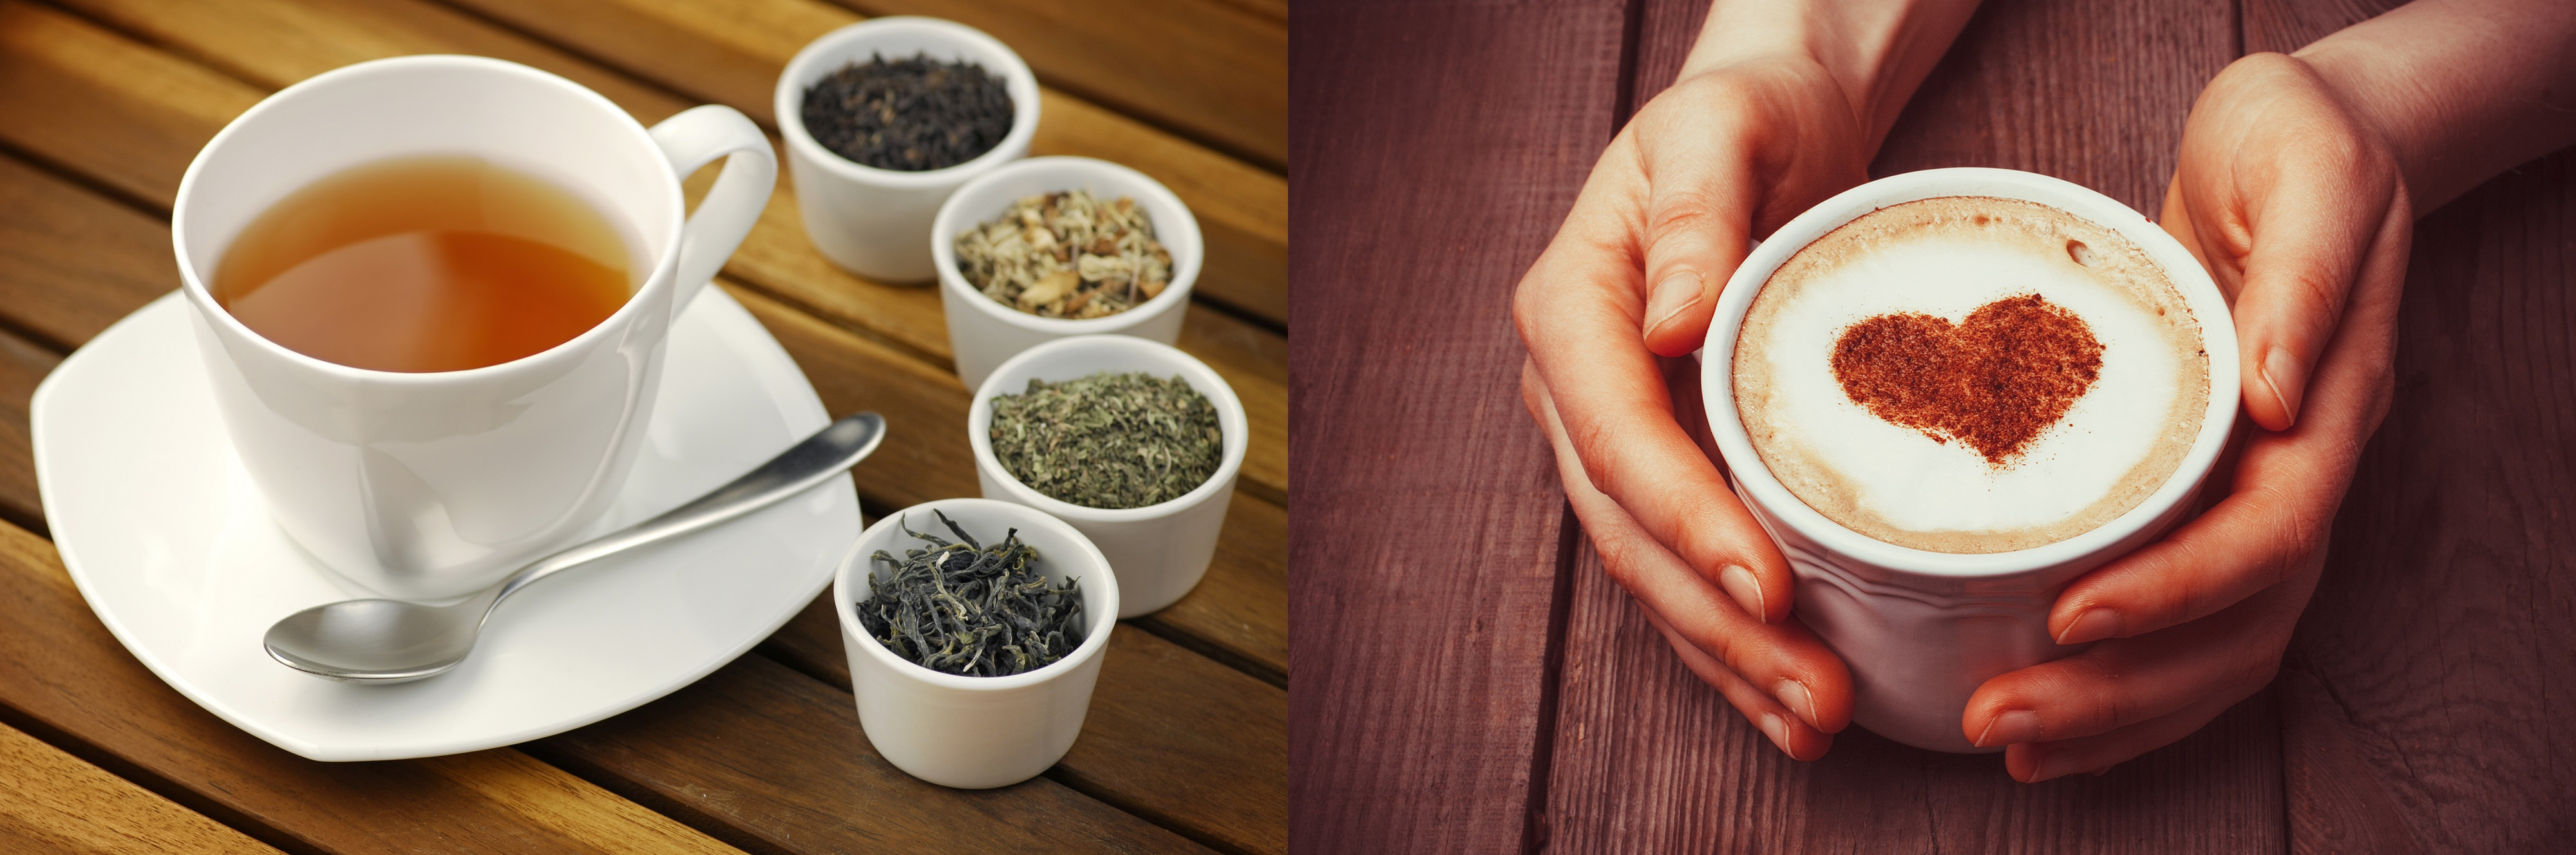 Tea vs Coffee, which one is better for your body and mind?